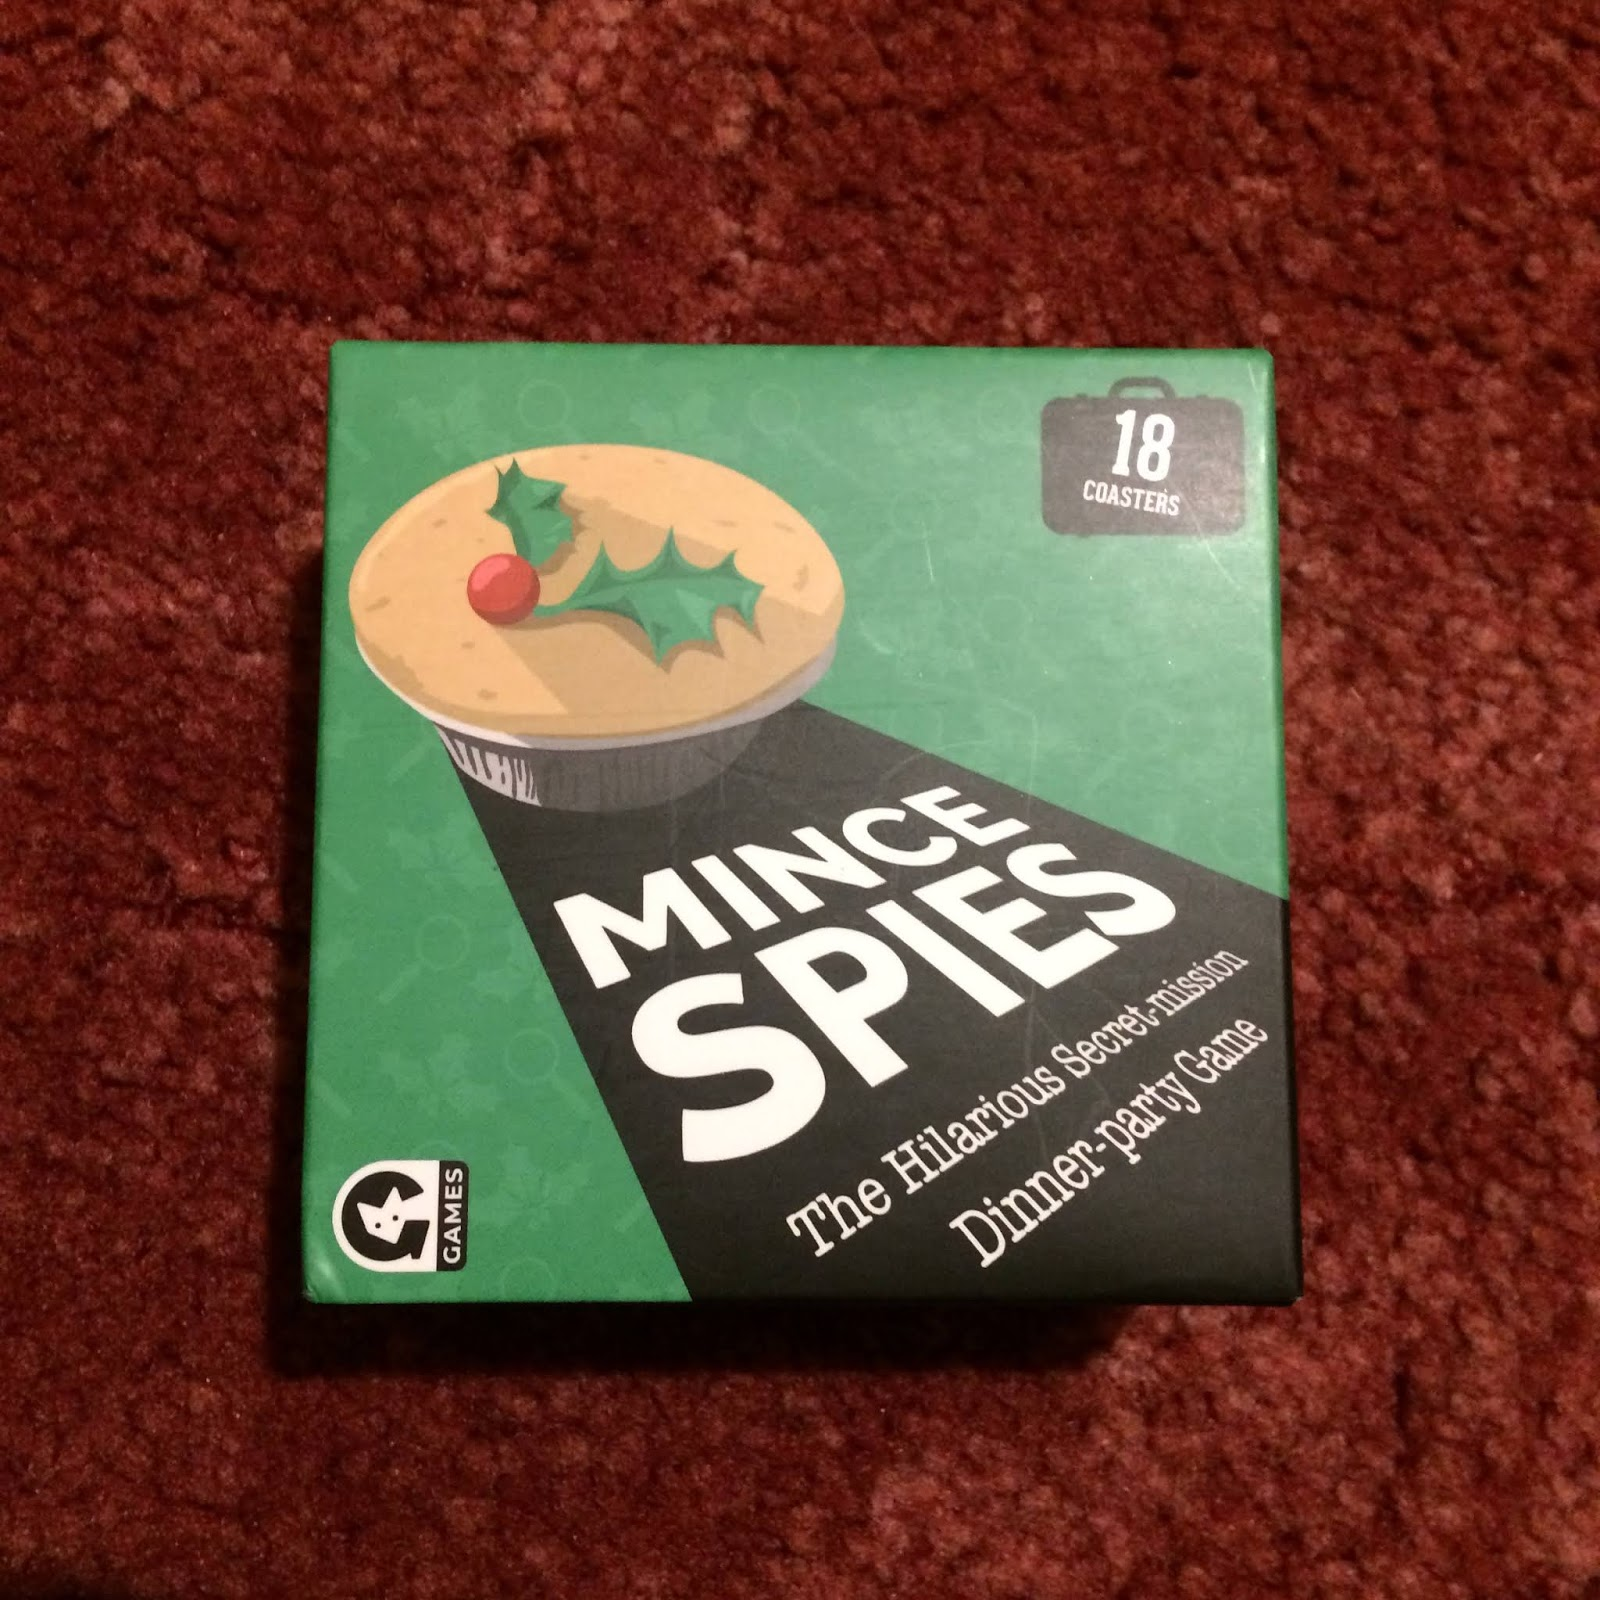 Mince Spies - The hilarious secret mission dinner-party game